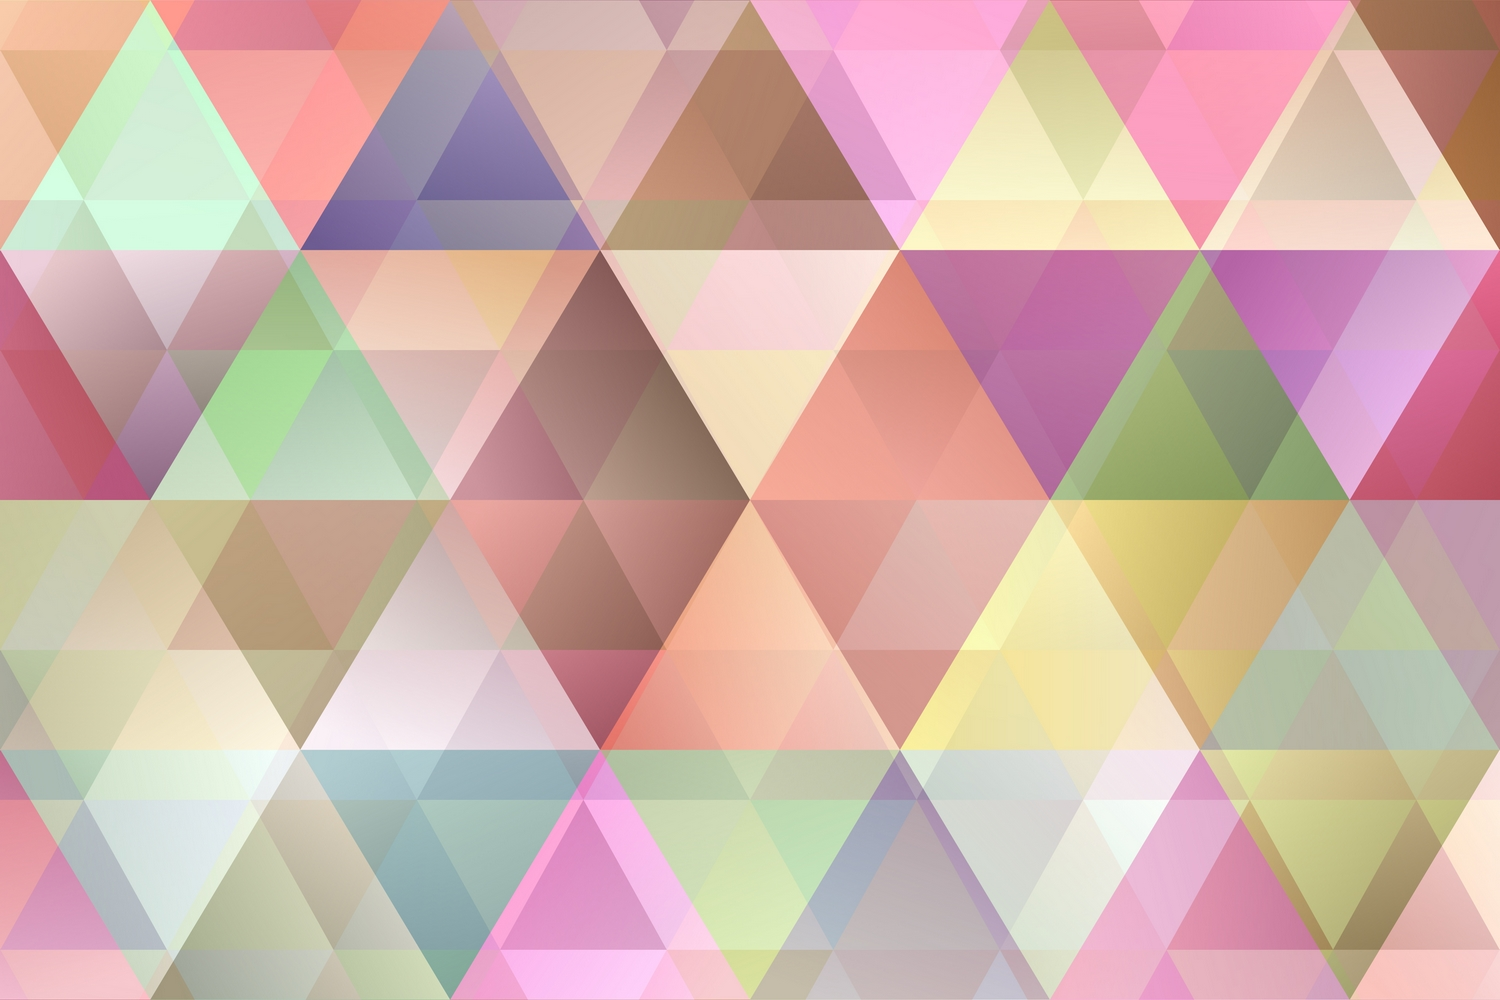 24 Gradient Polygon Backgrounds AI, EPS, JPG 5000x5000 example image 18